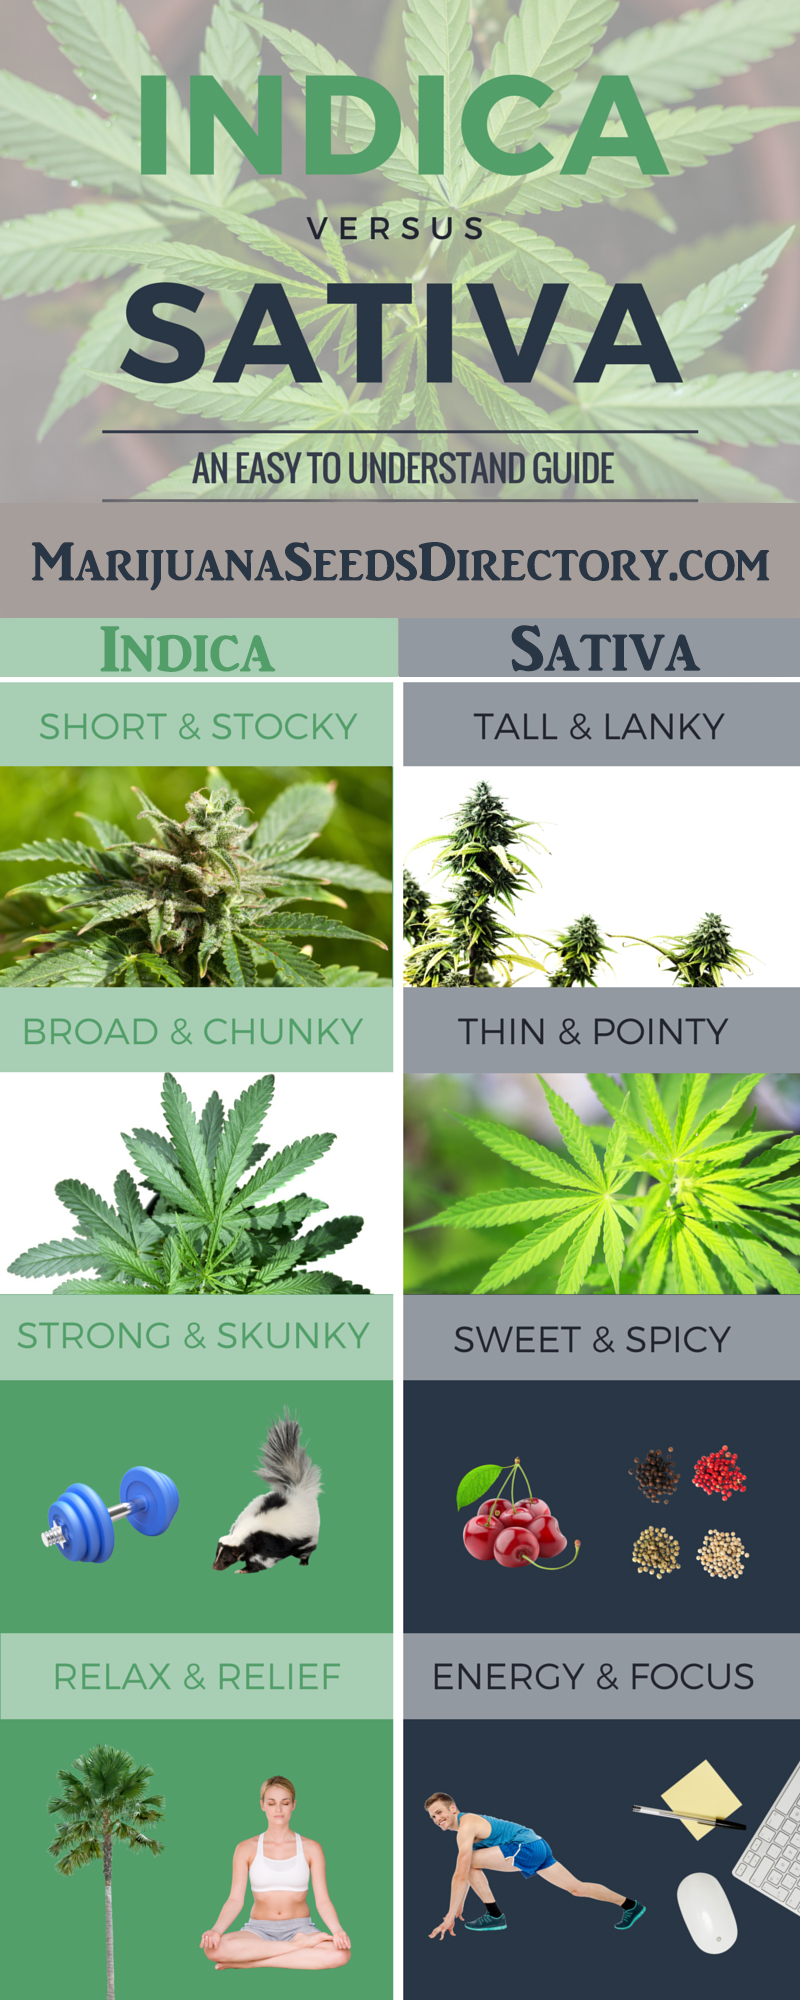 Differences Between Indica and Sativa Infographic